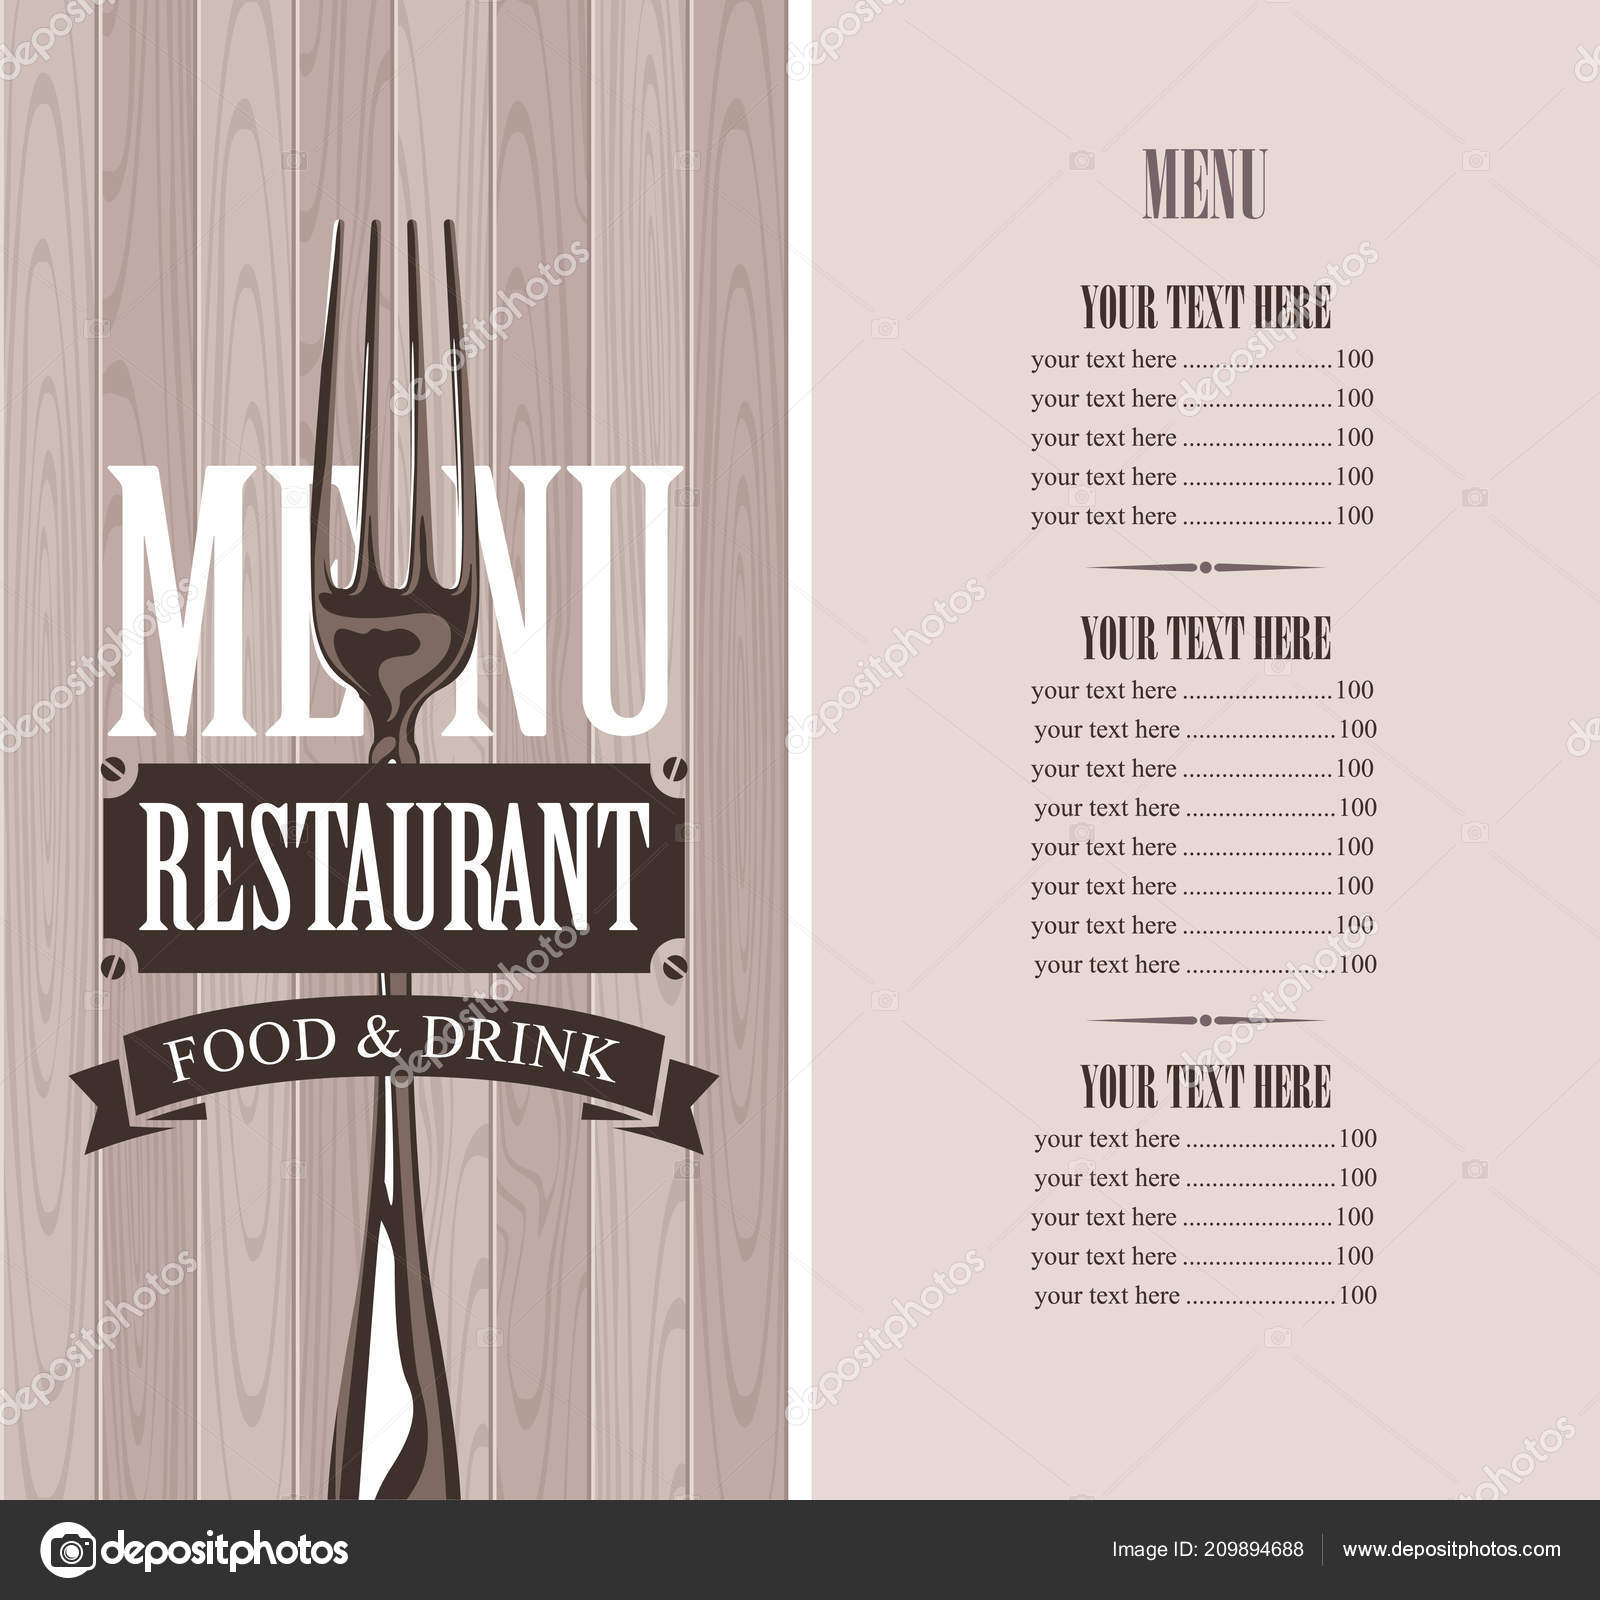 Vector Template Menu Restaurant Price List Realistic Fork Wooden Background Stock Vector C Paseven 209894688